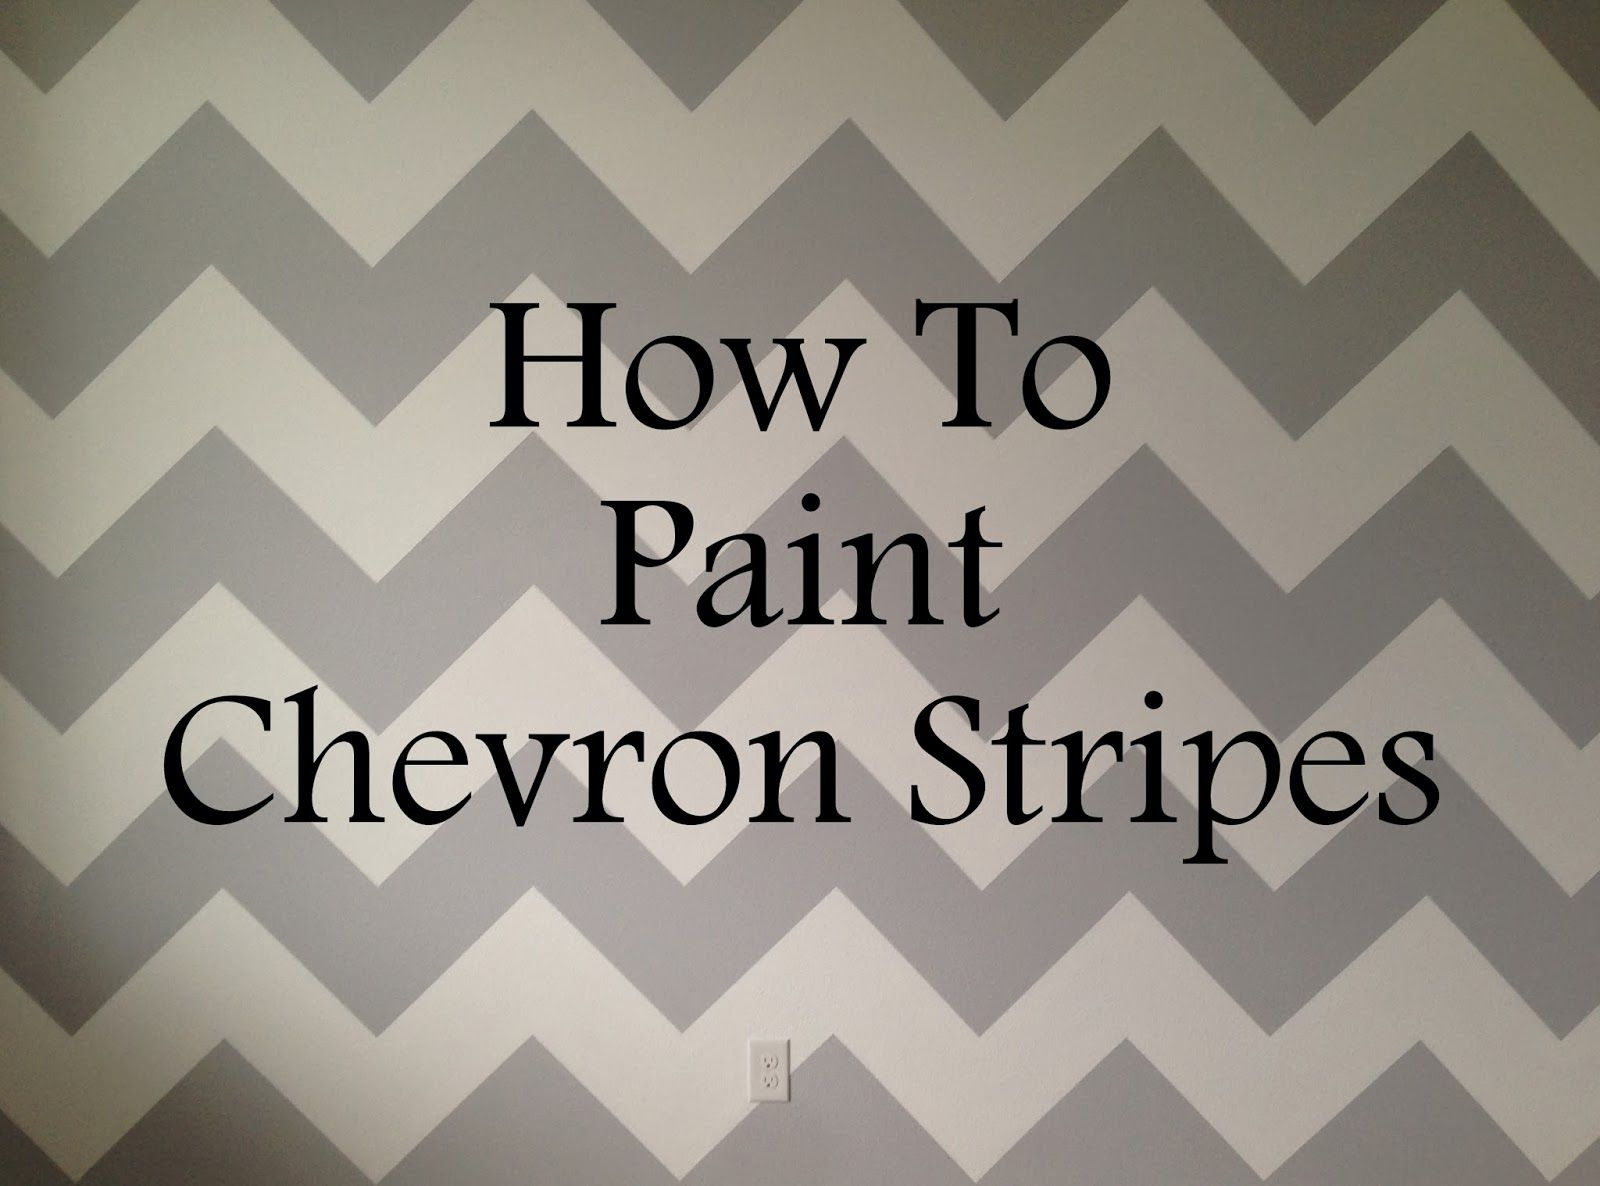 Life As Always Live Learn How To Paint Chevron Stripes How